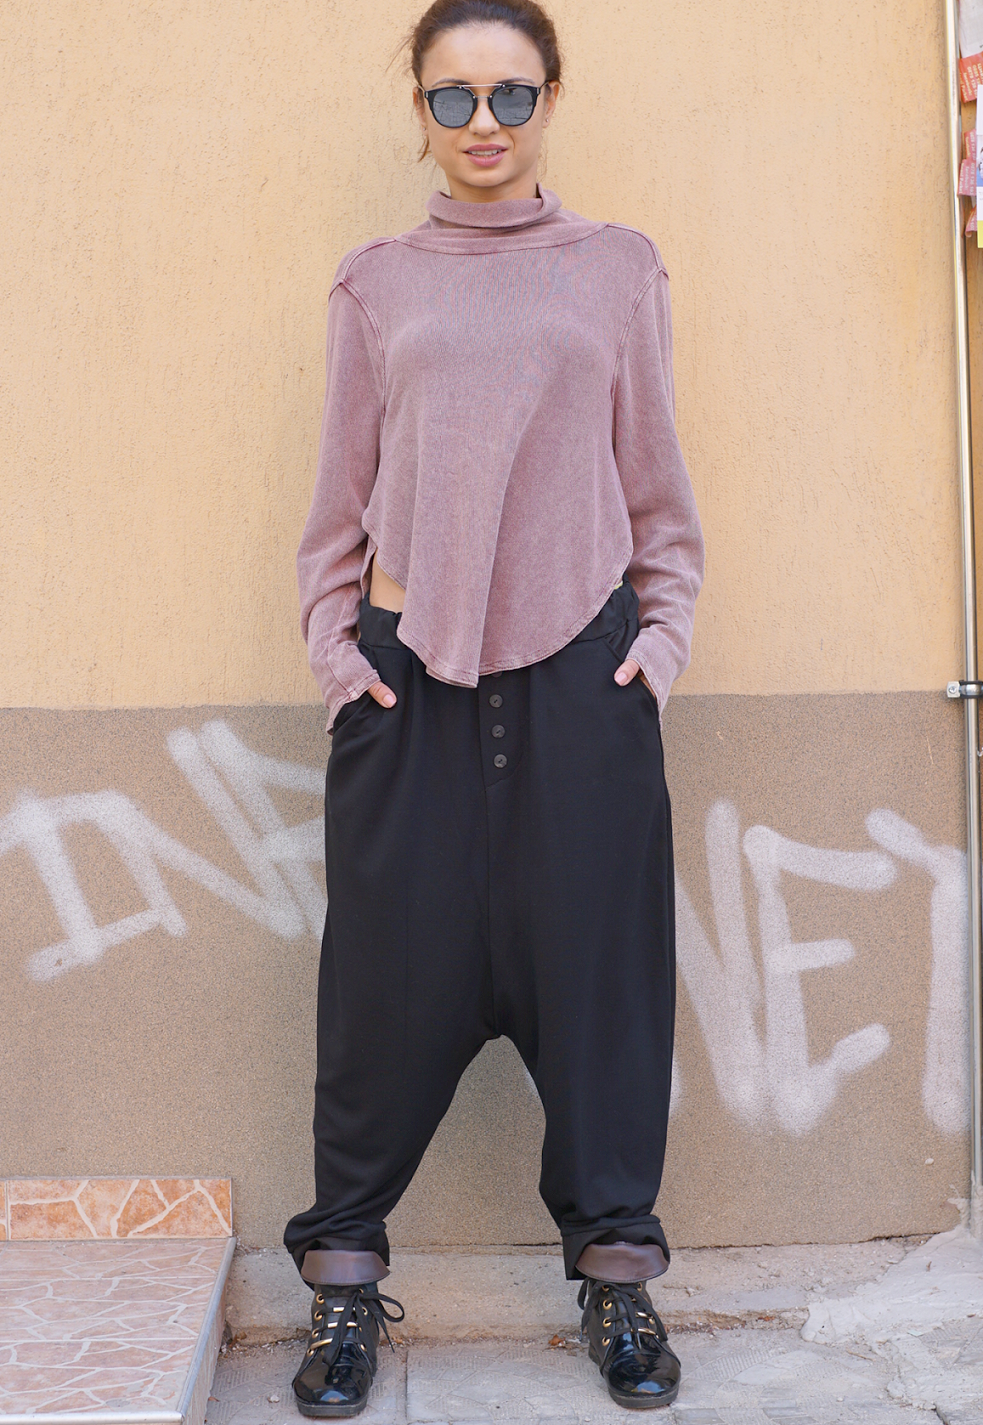 Baggy Fall Winter Drop Crotch Pants